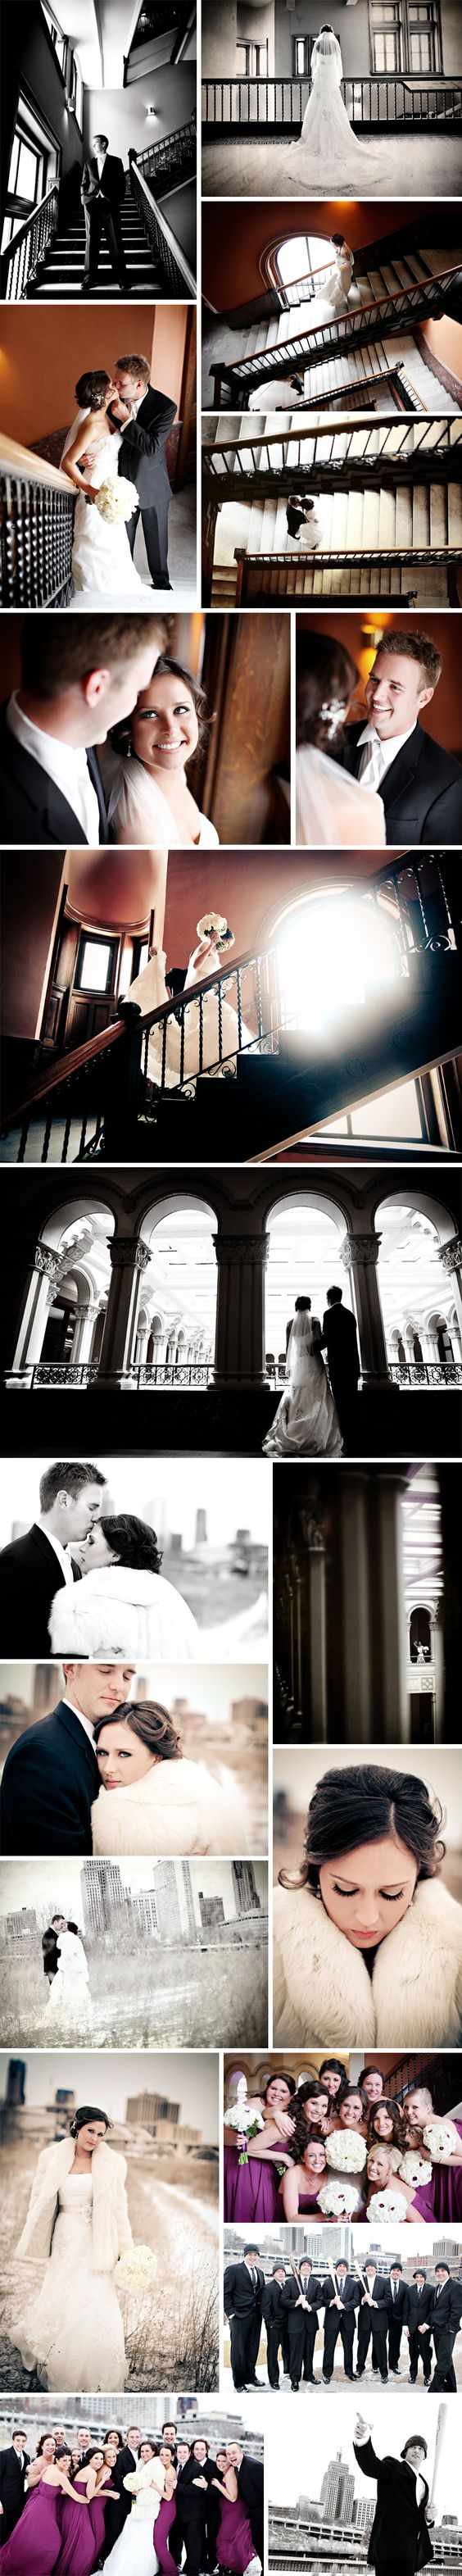 asian wedding photography east midlands%0A    best Stairs images on Pinterest   Engagement pics  Ladder and Staircases